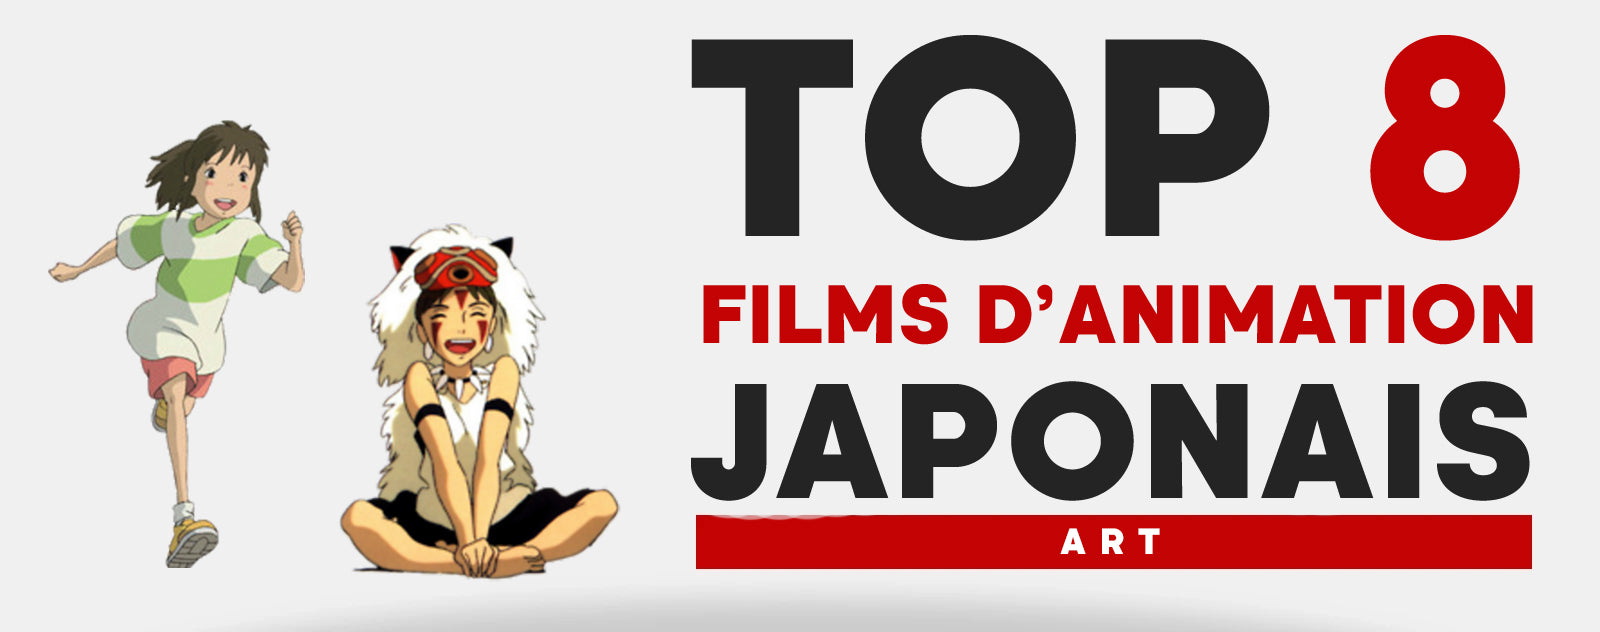 Top Films Animation Japonais